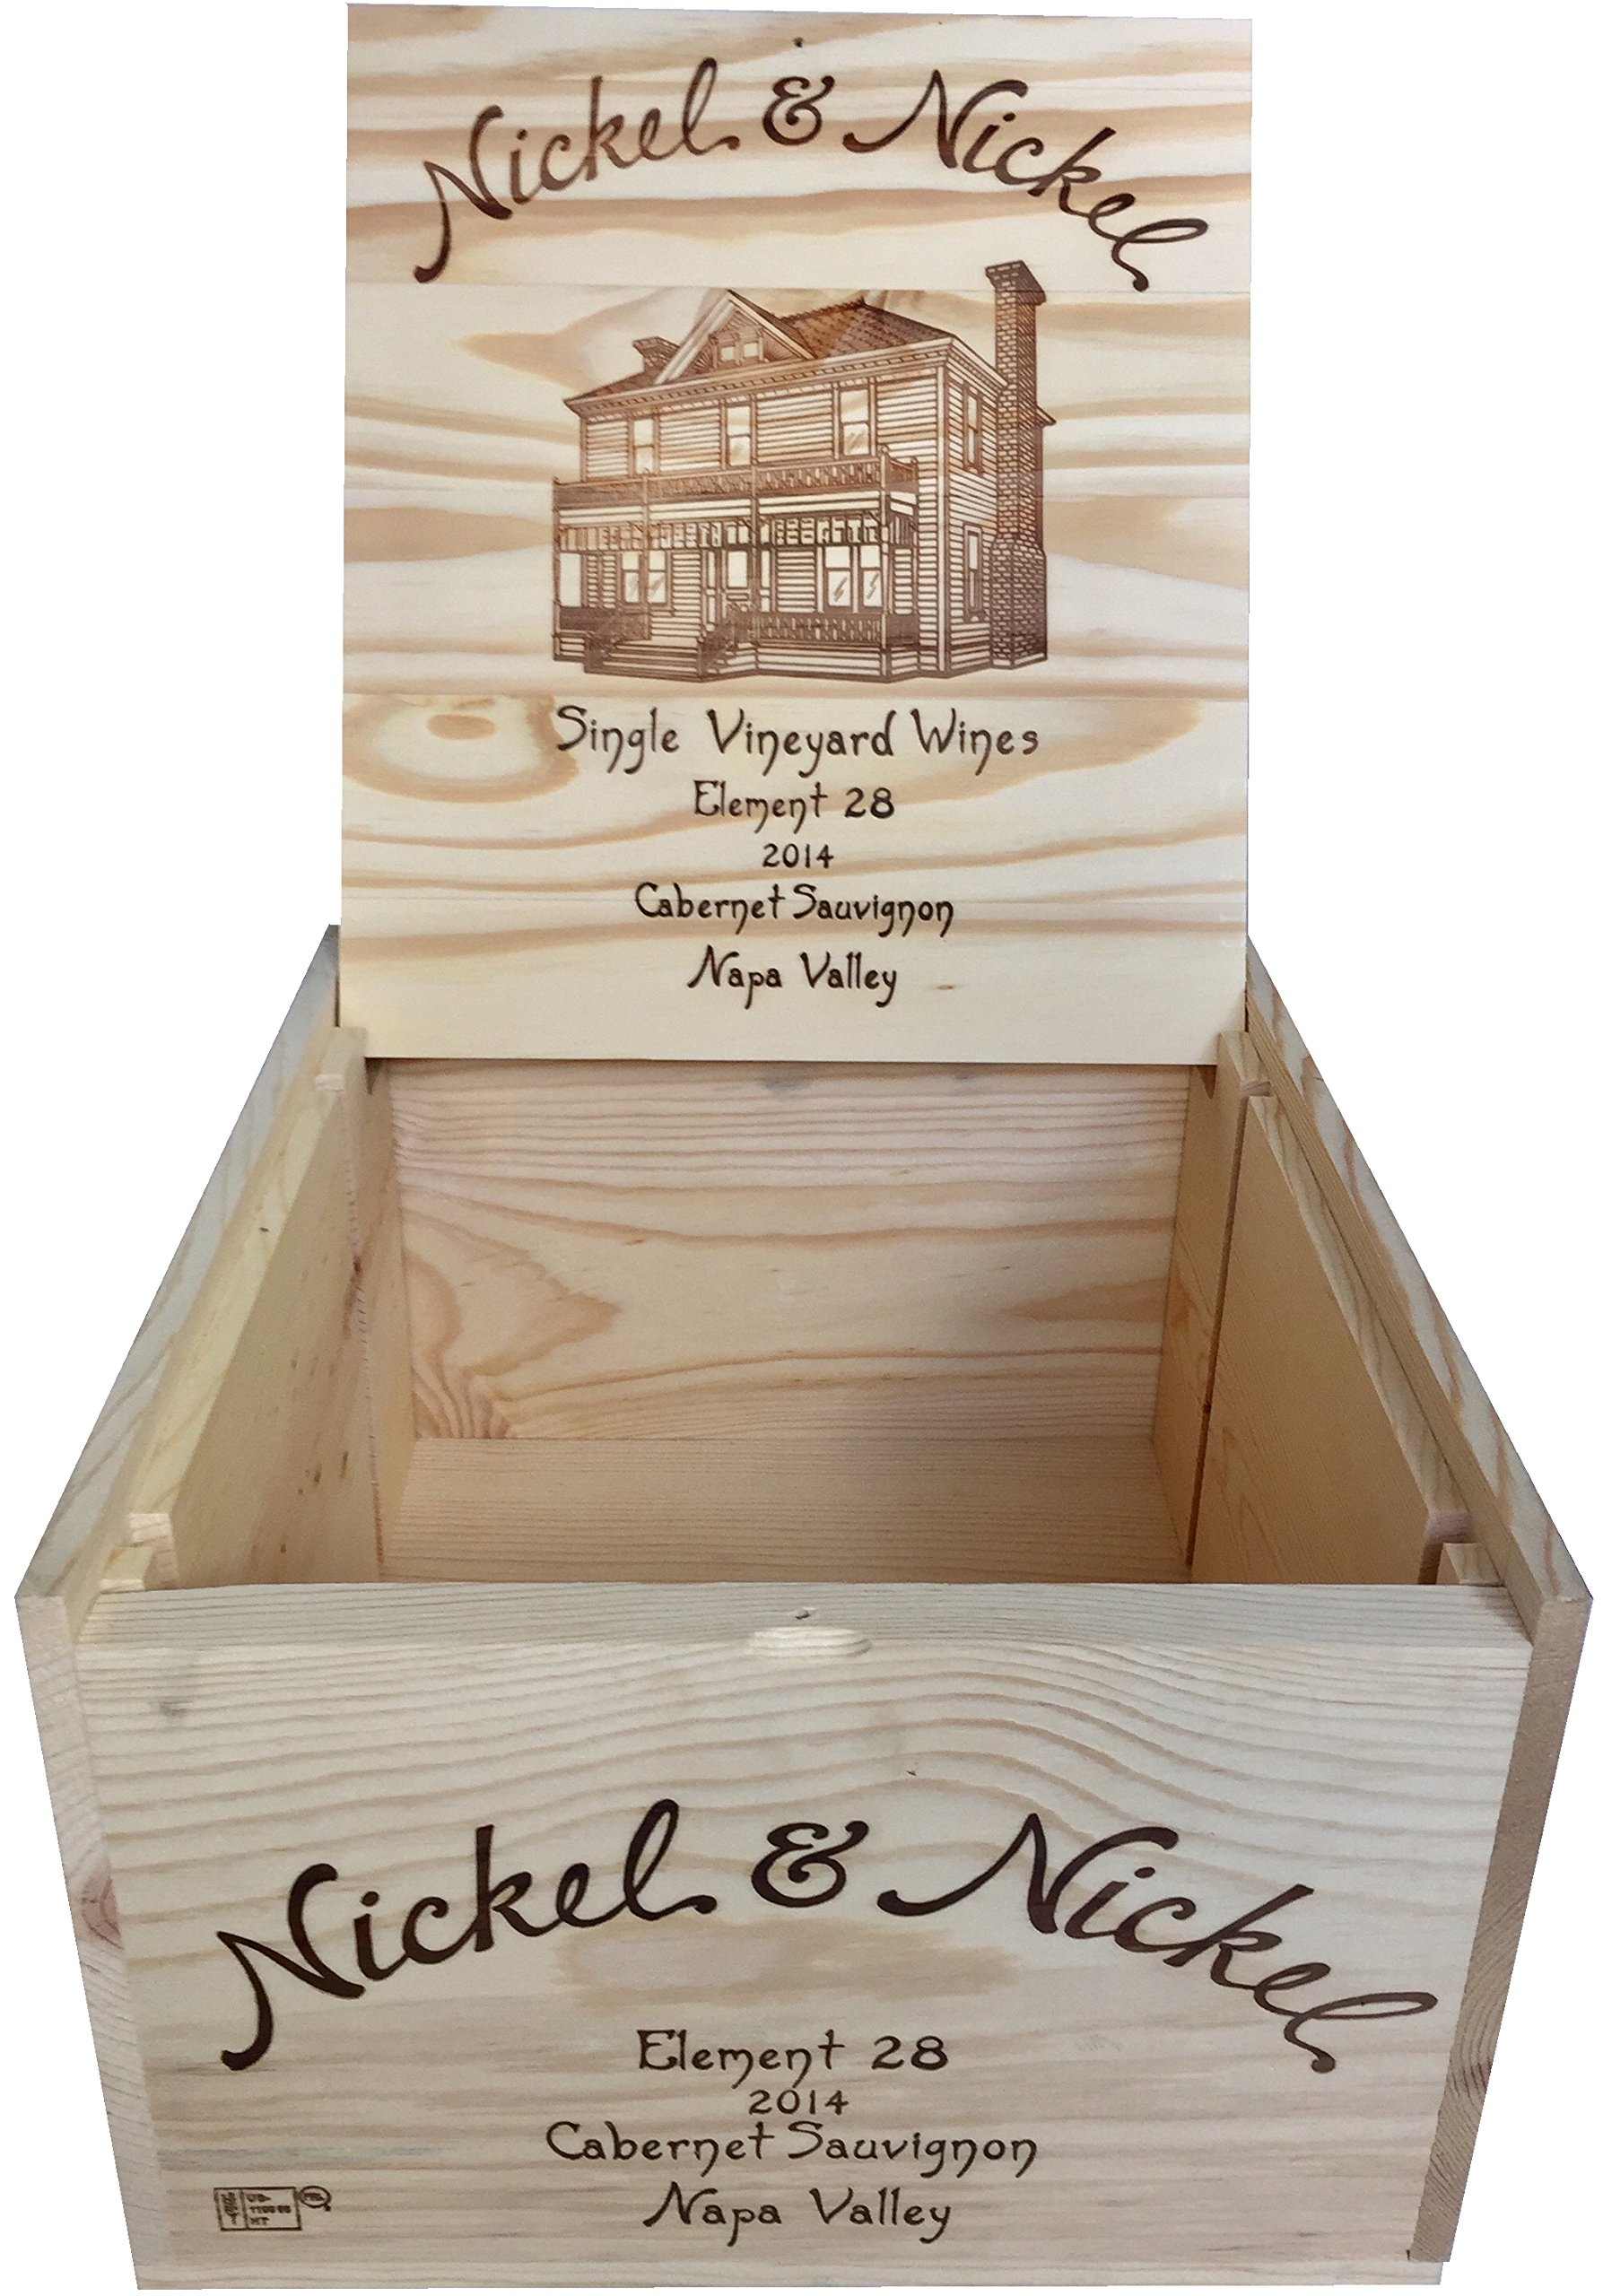 Vineyard Crates Wine Crate - Original Nickel & Nickel Decorative Wooden Wine Box with Hinged Lid and Logos On 5 Sides - Multiple Sizes - For Wedding, DIY or Wine Storage (14x12x8 NO Inserts) by Vineyard Crates (Image #1)